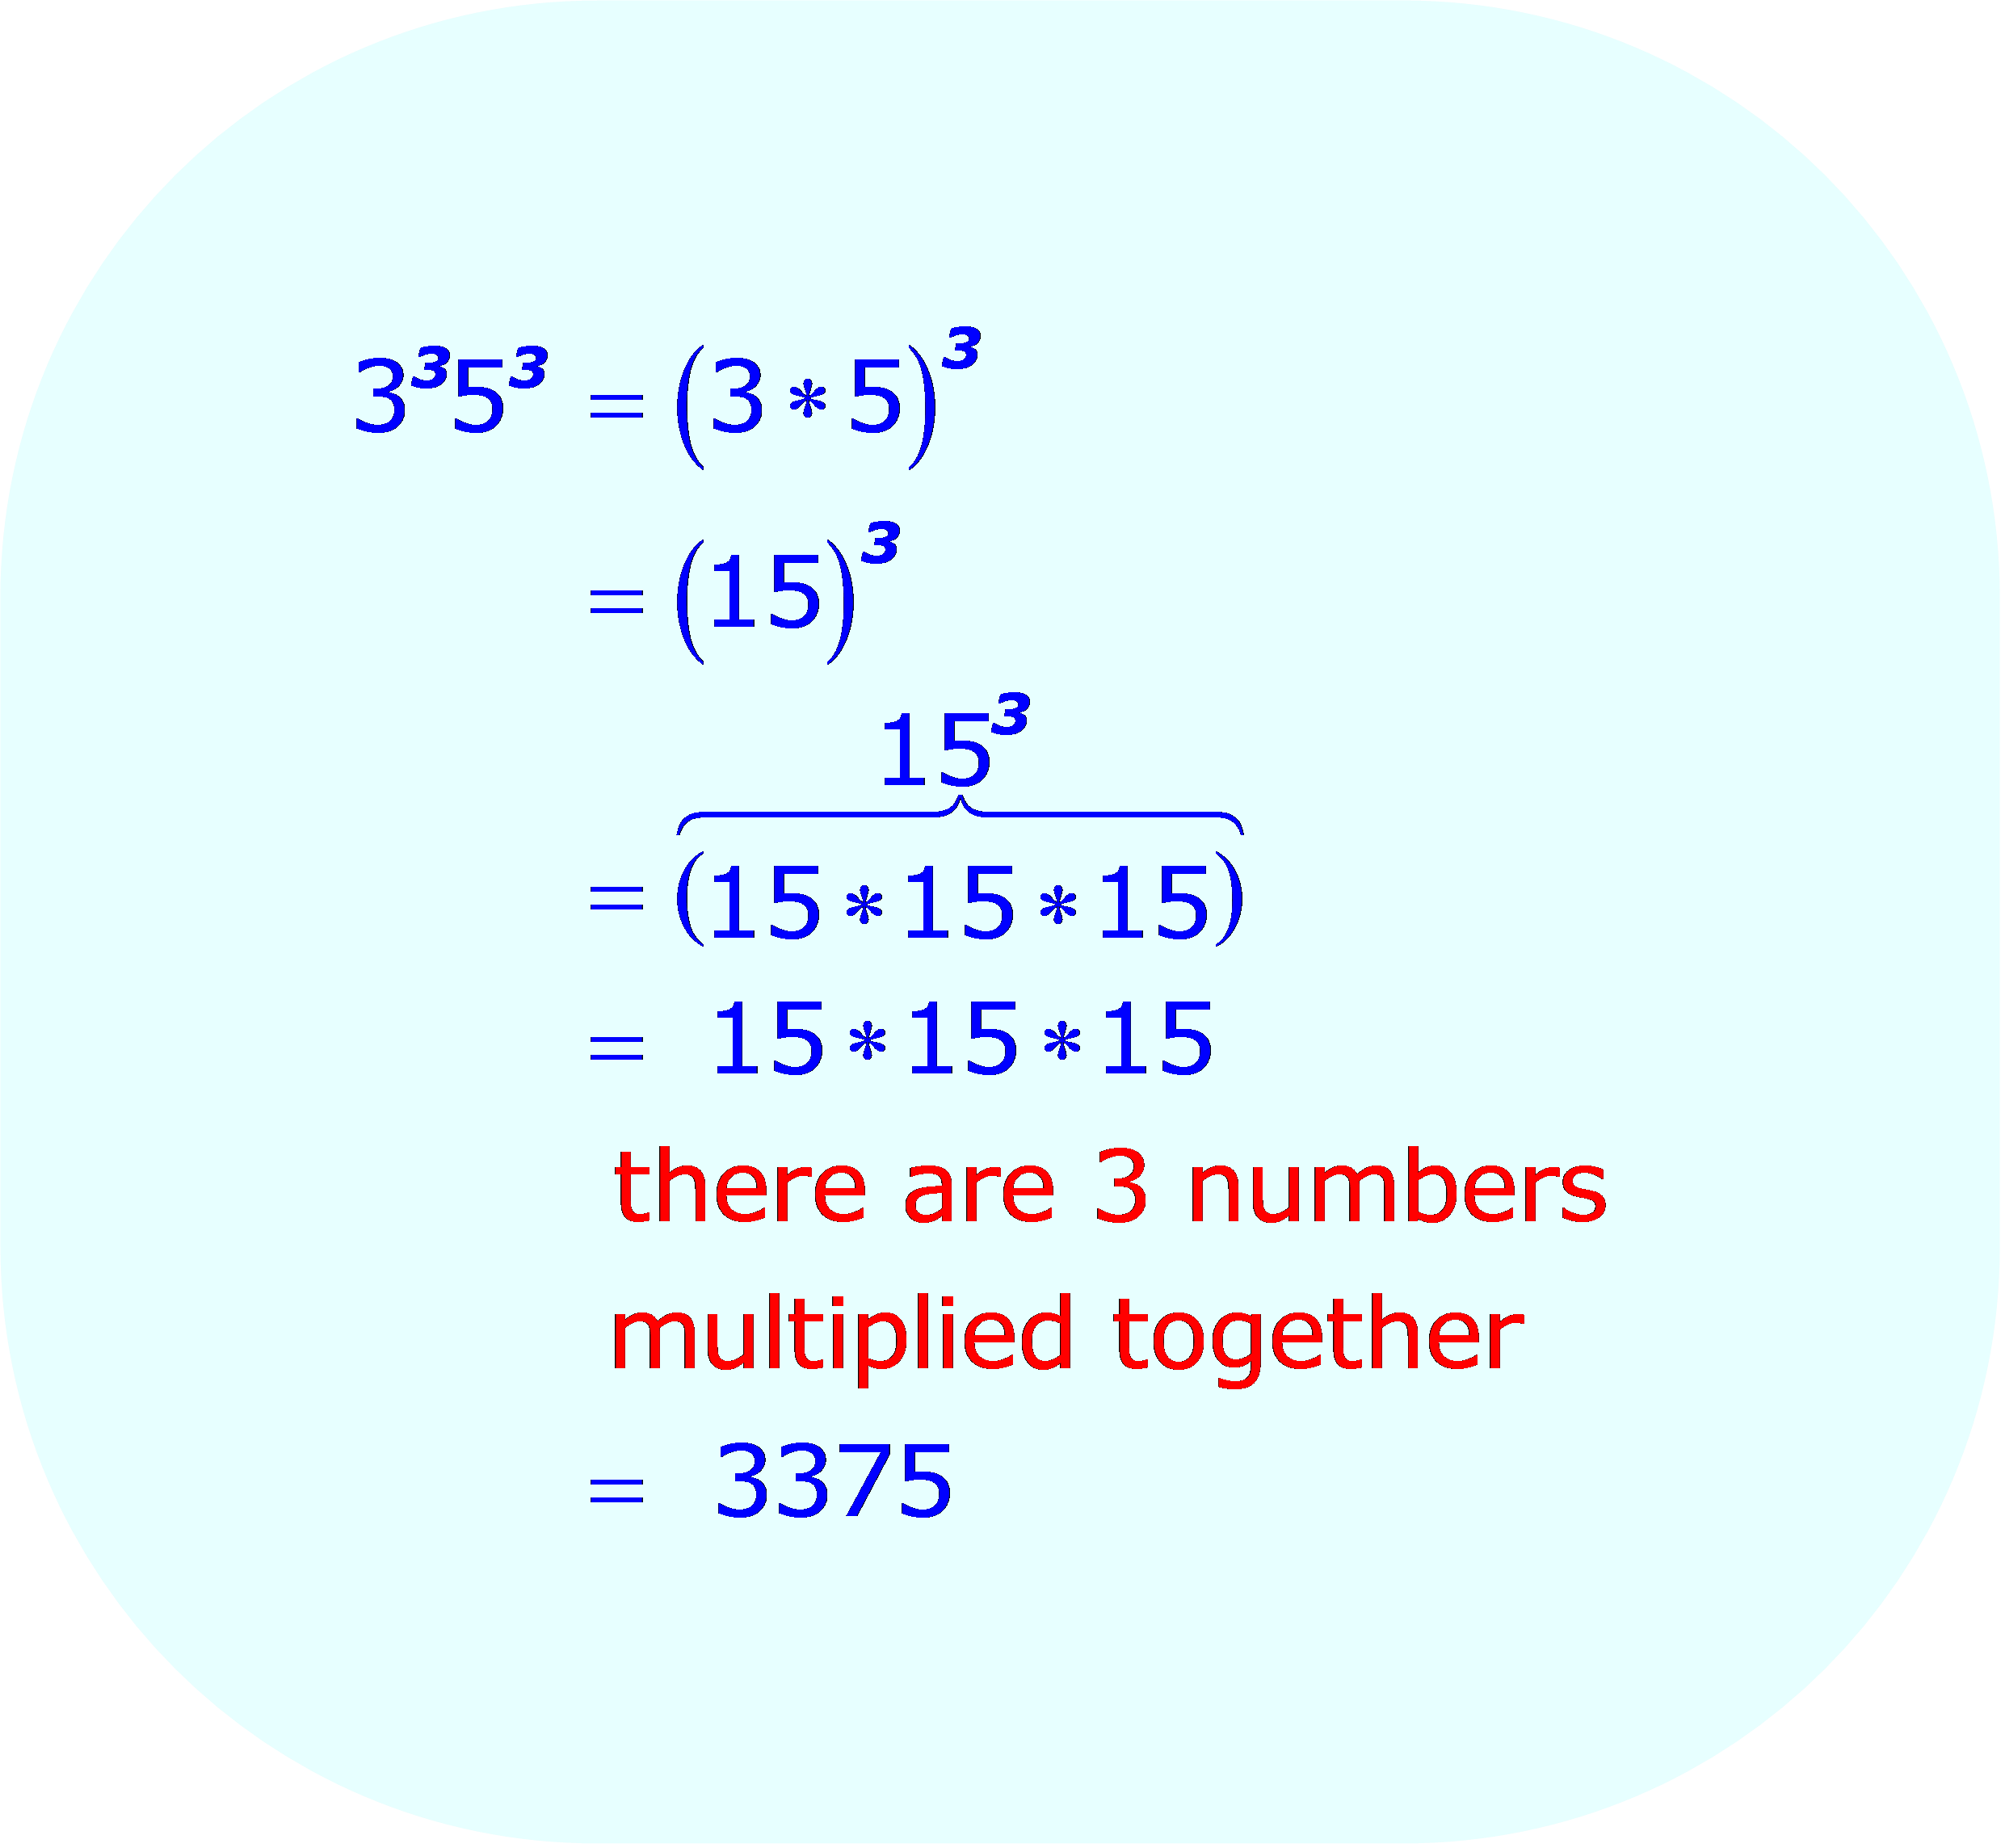 Multiplying Two Exponential Expressions - Rewriting the entire expression so there is only one base, when 